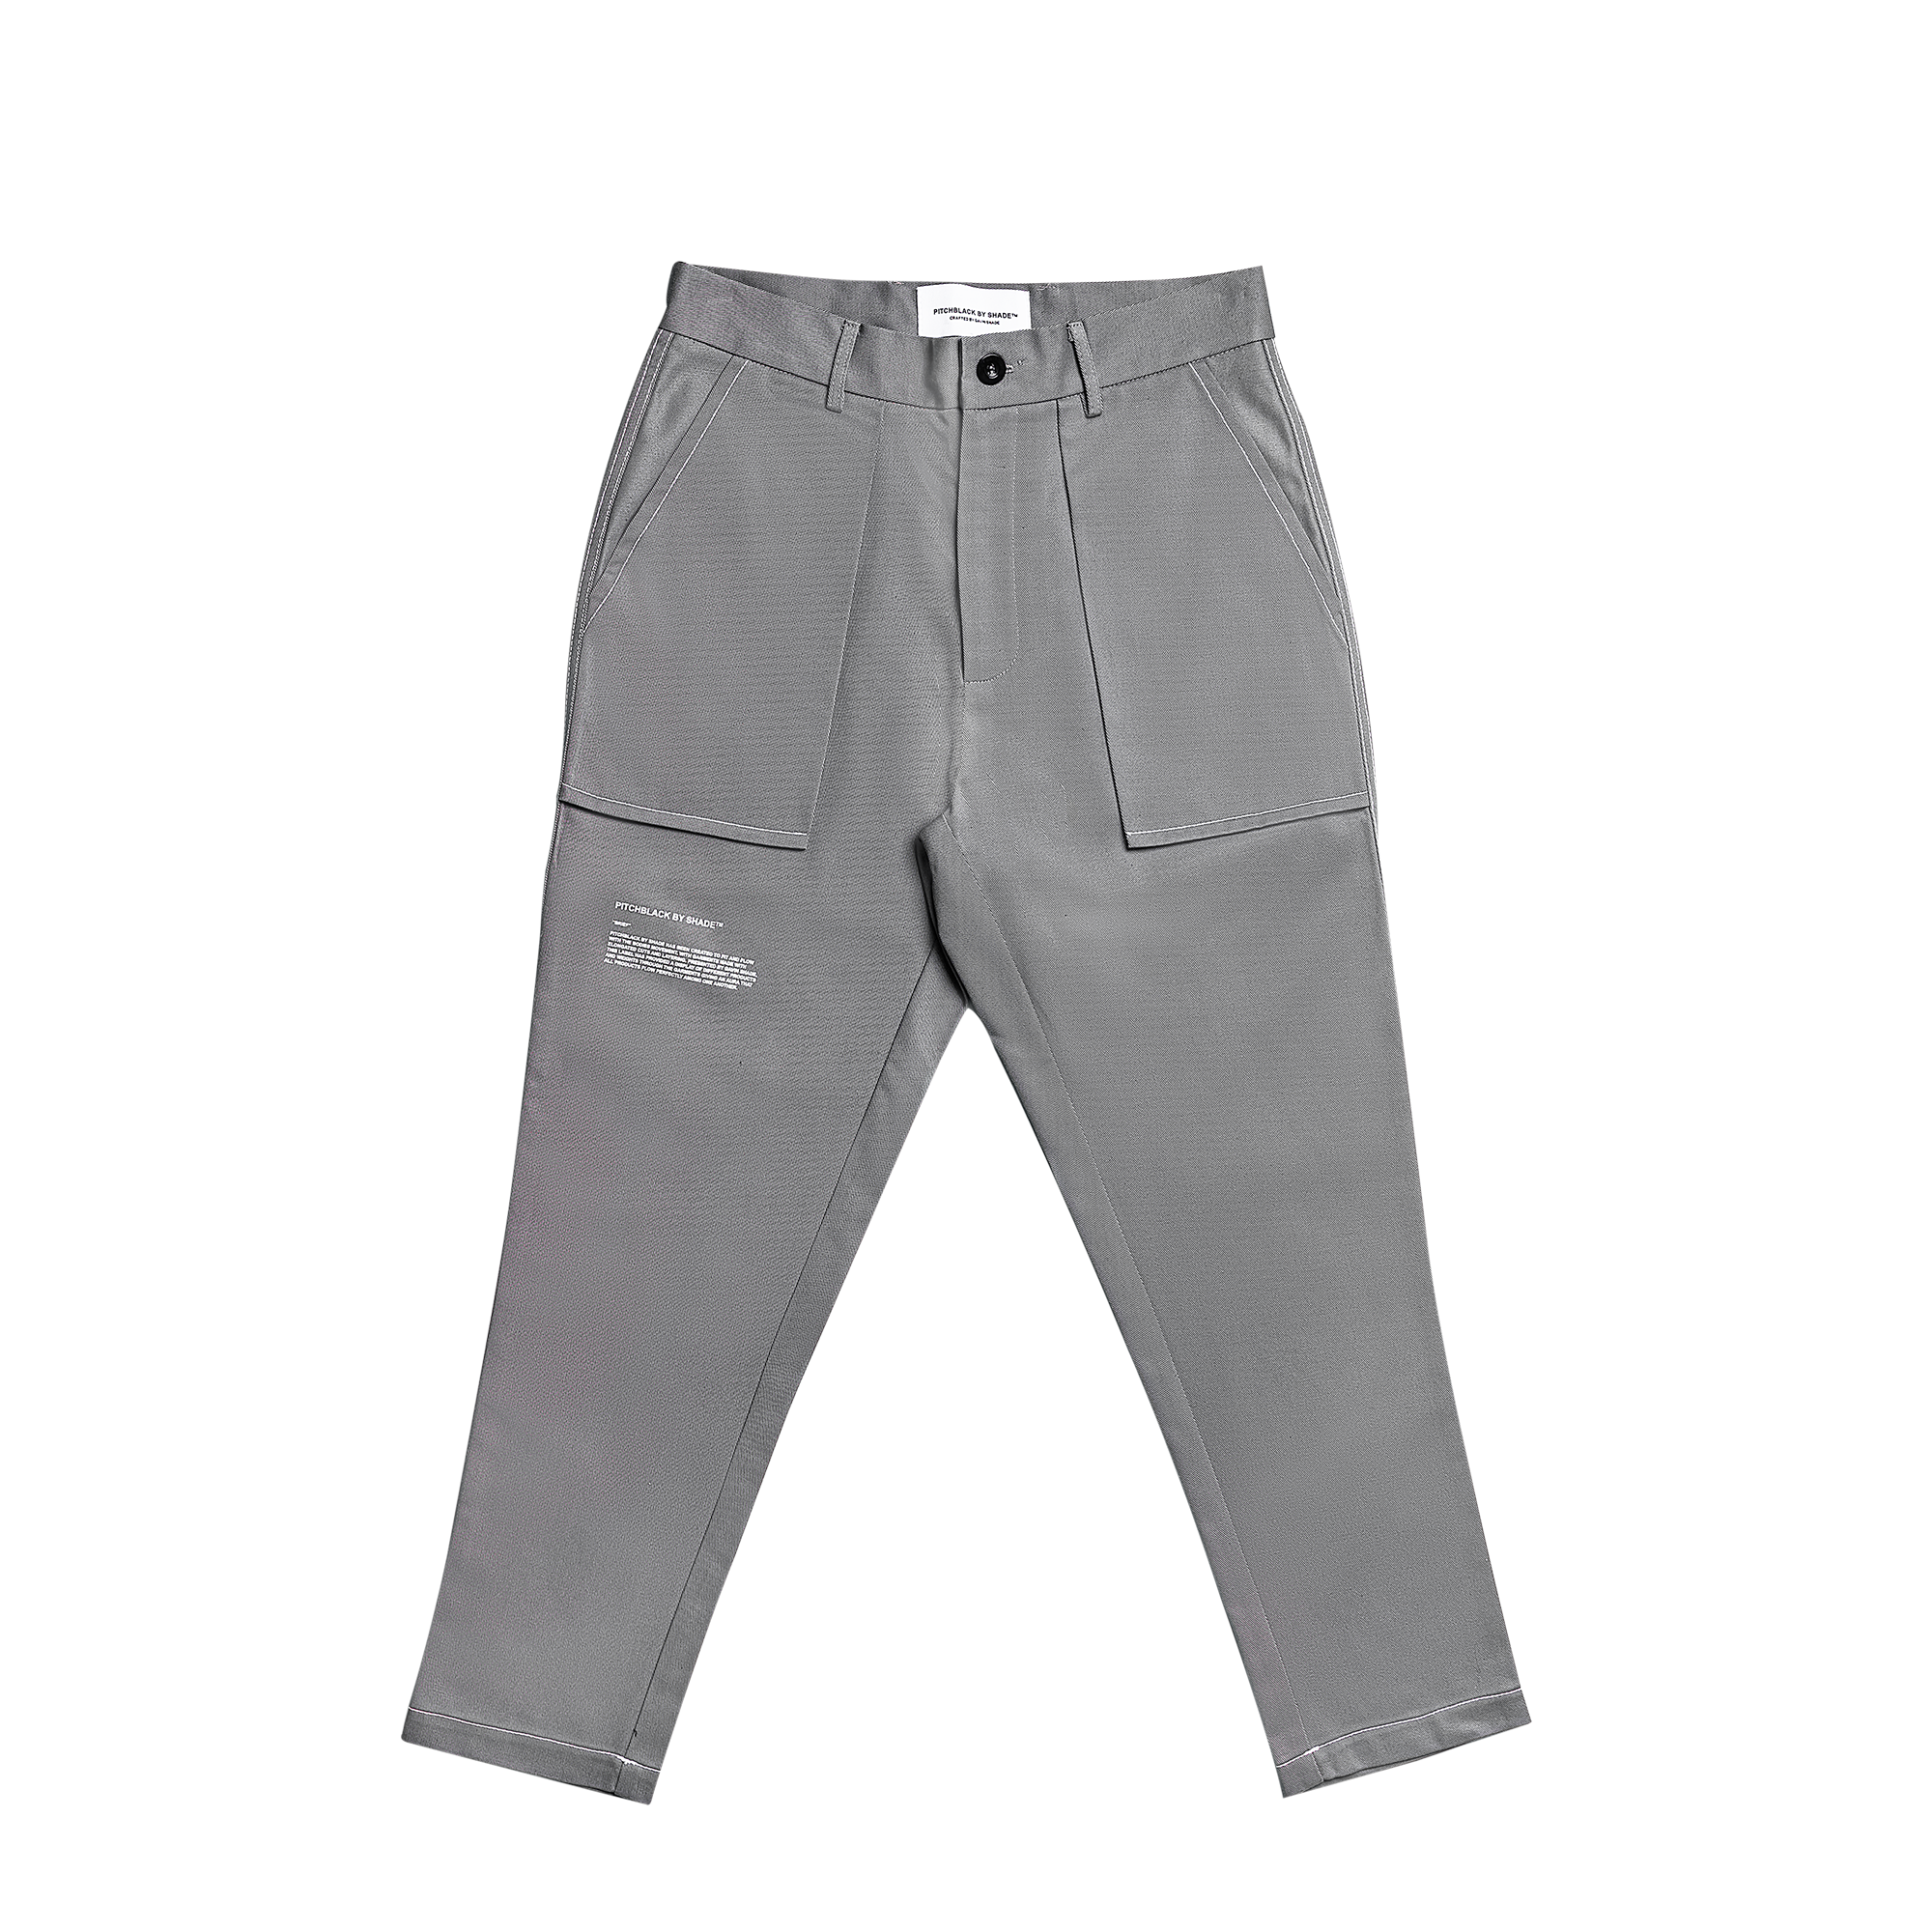 002 REVERSE TROUSERS